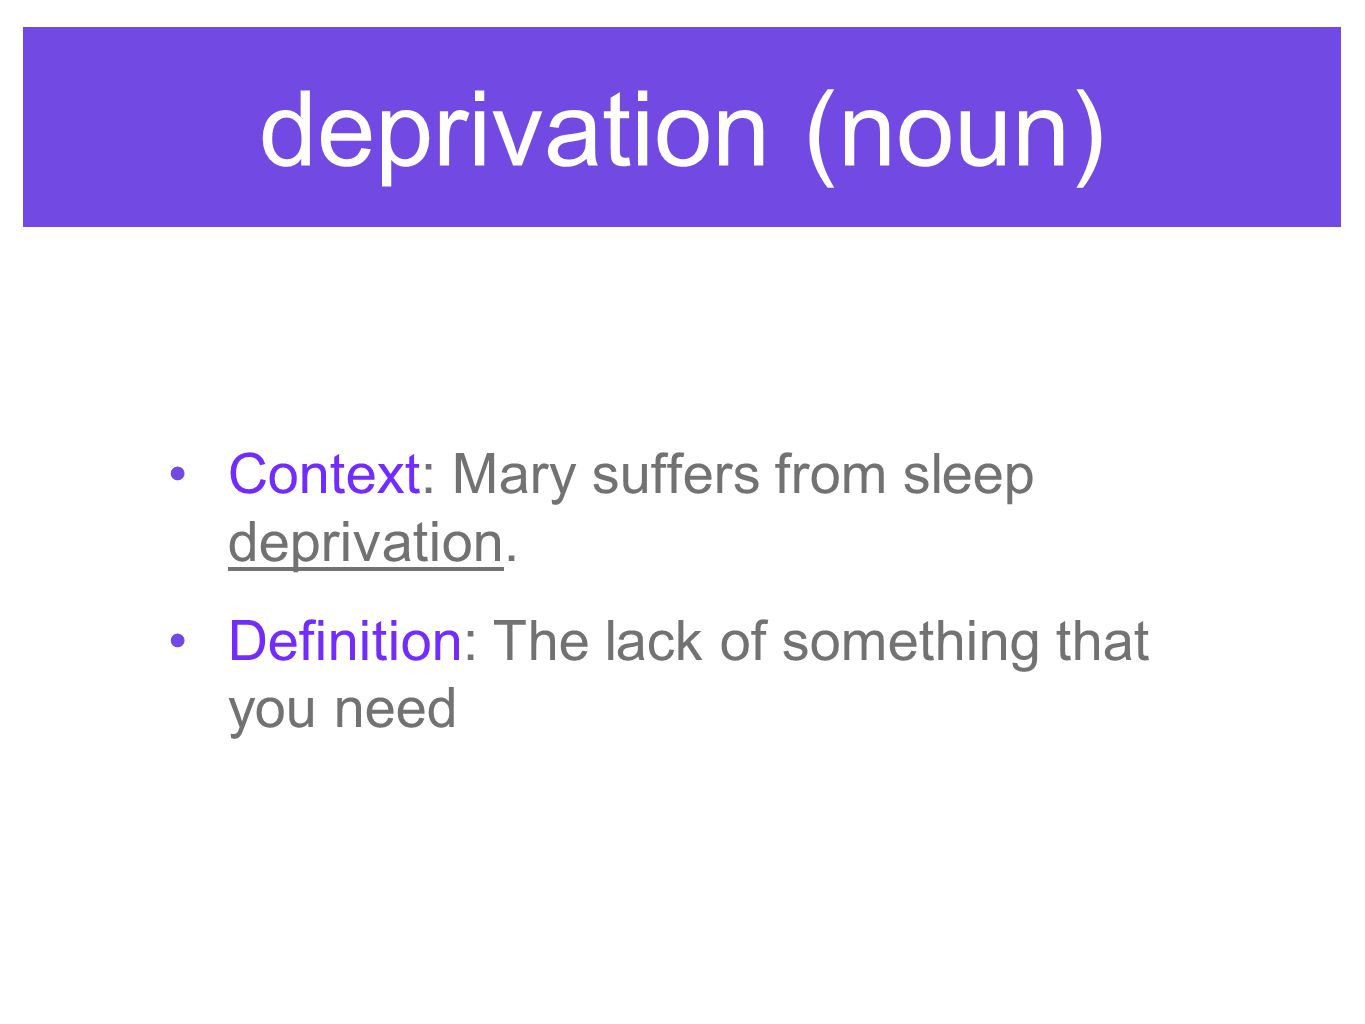 deprivation (noun) Context: Mary suffers from sleep deprivation. Definition: The lack of something that you need